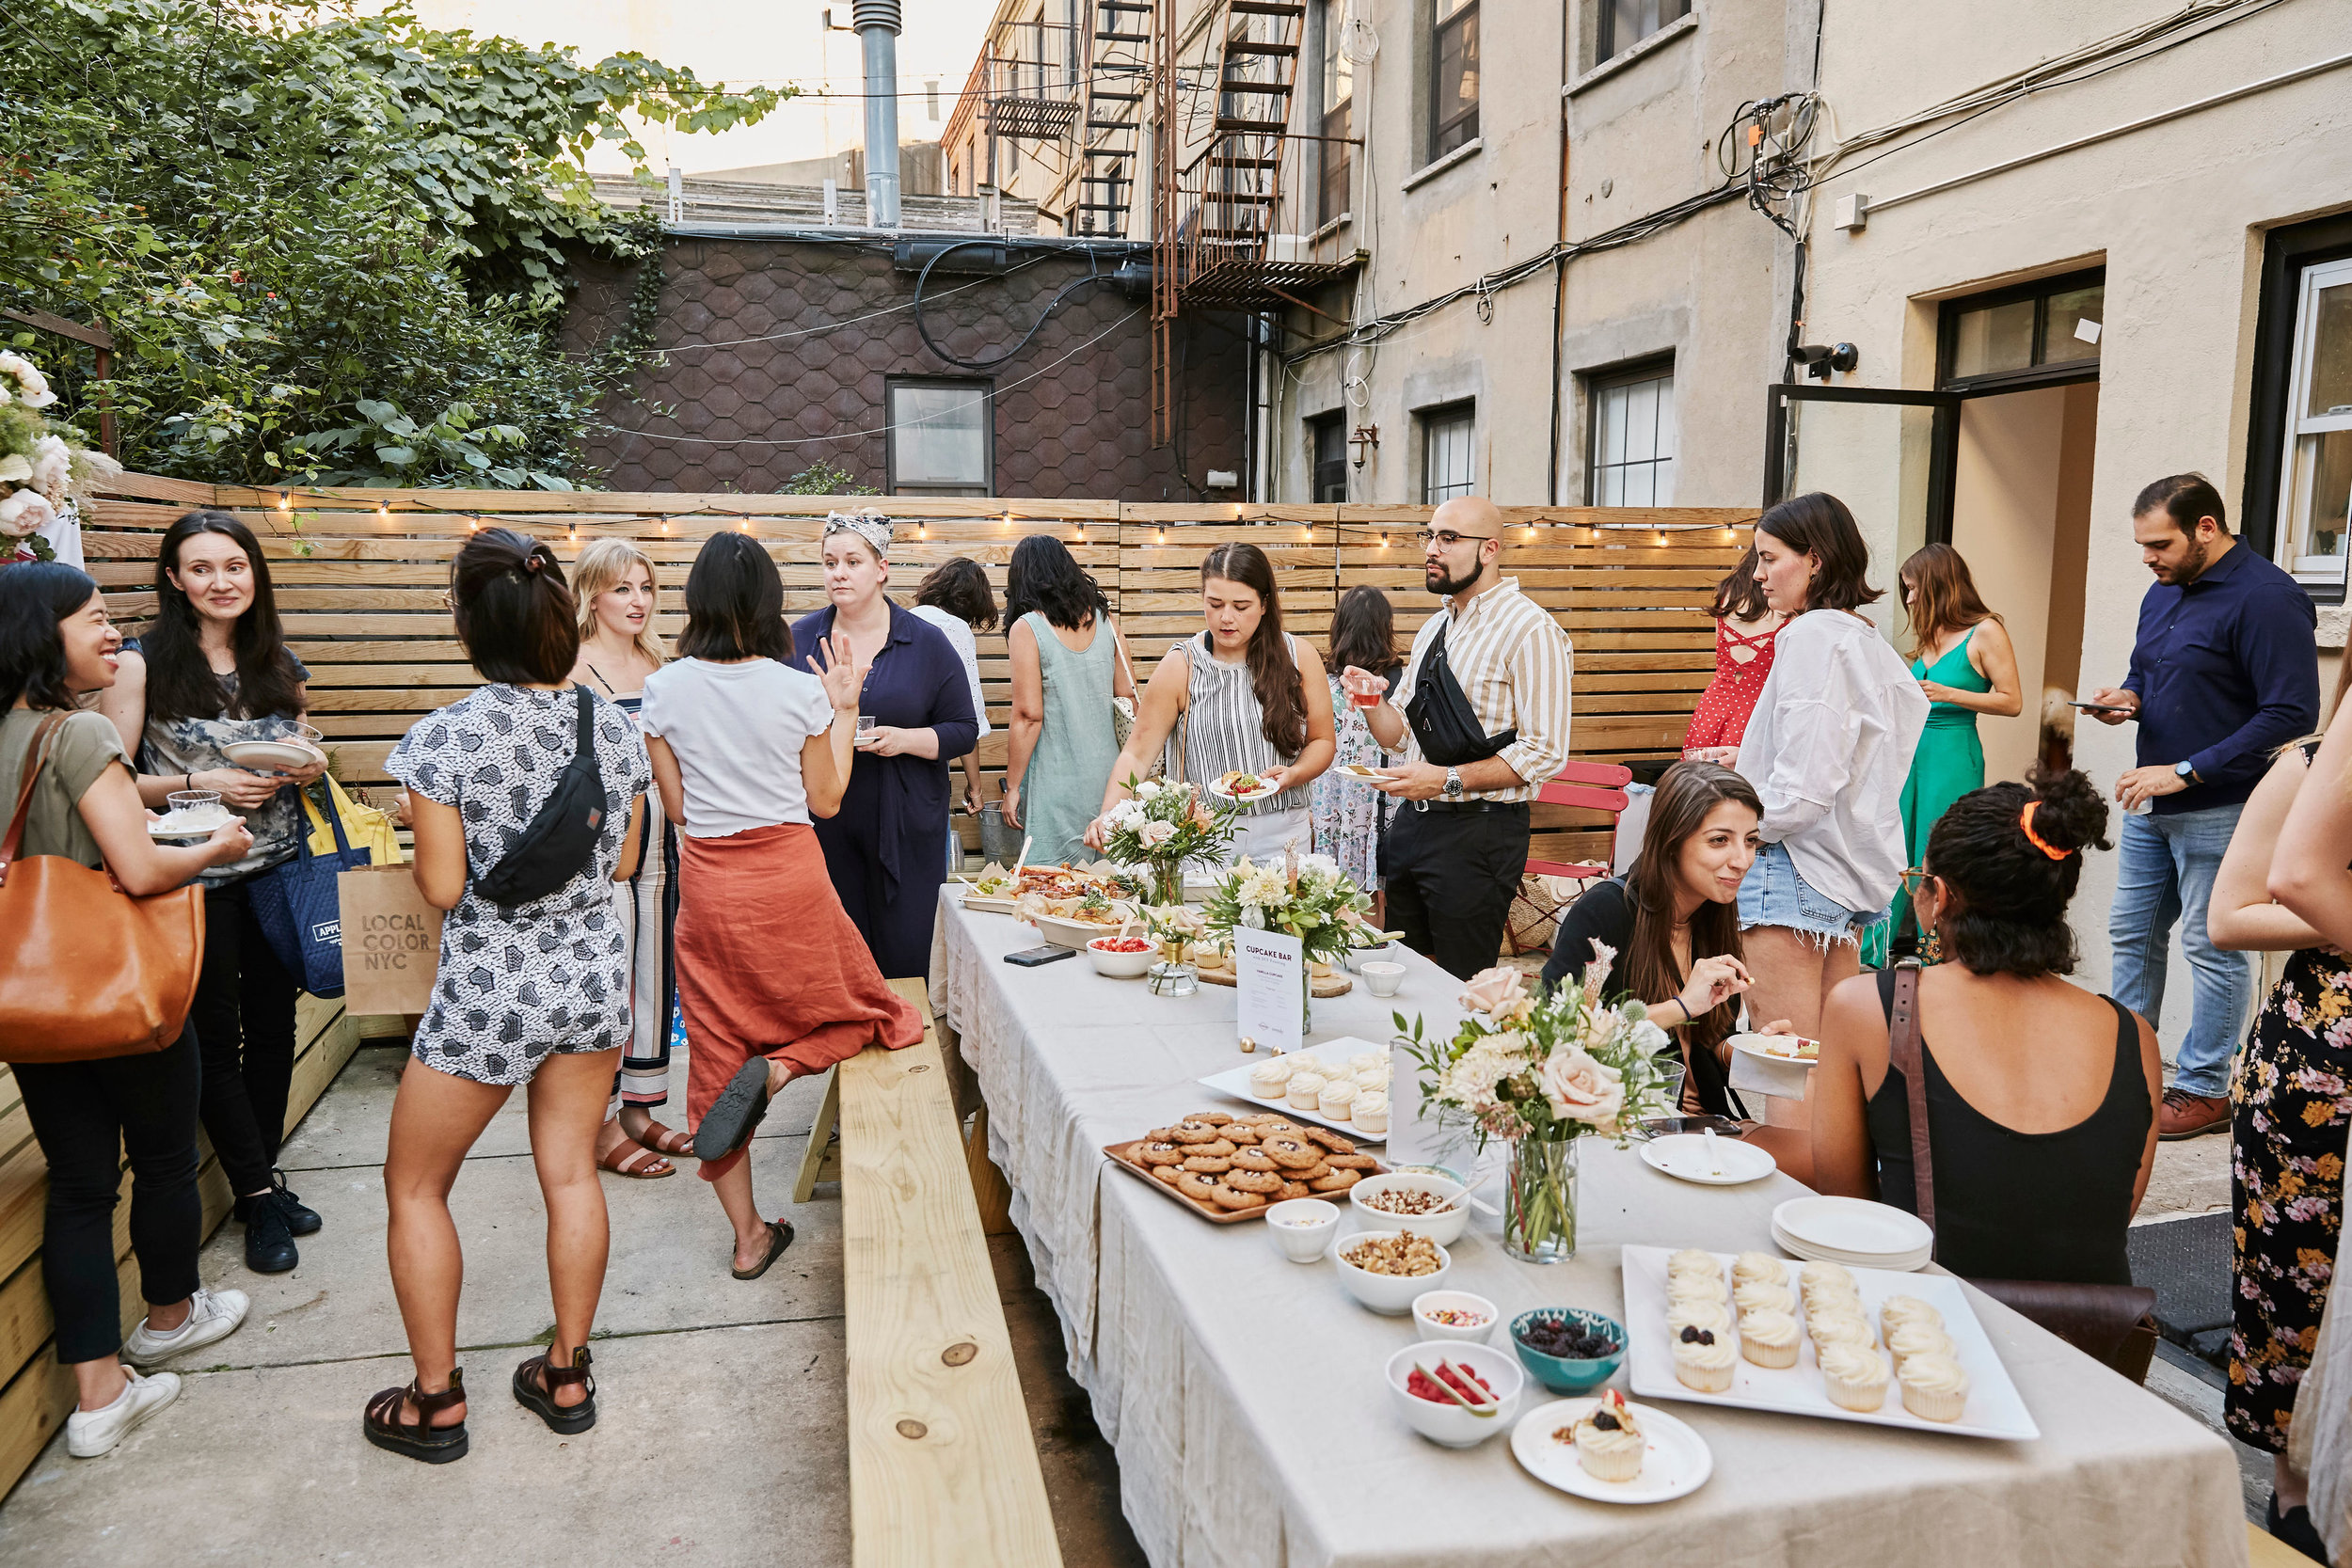 Special Event in the Ovenly Studio ONE54 Backyard